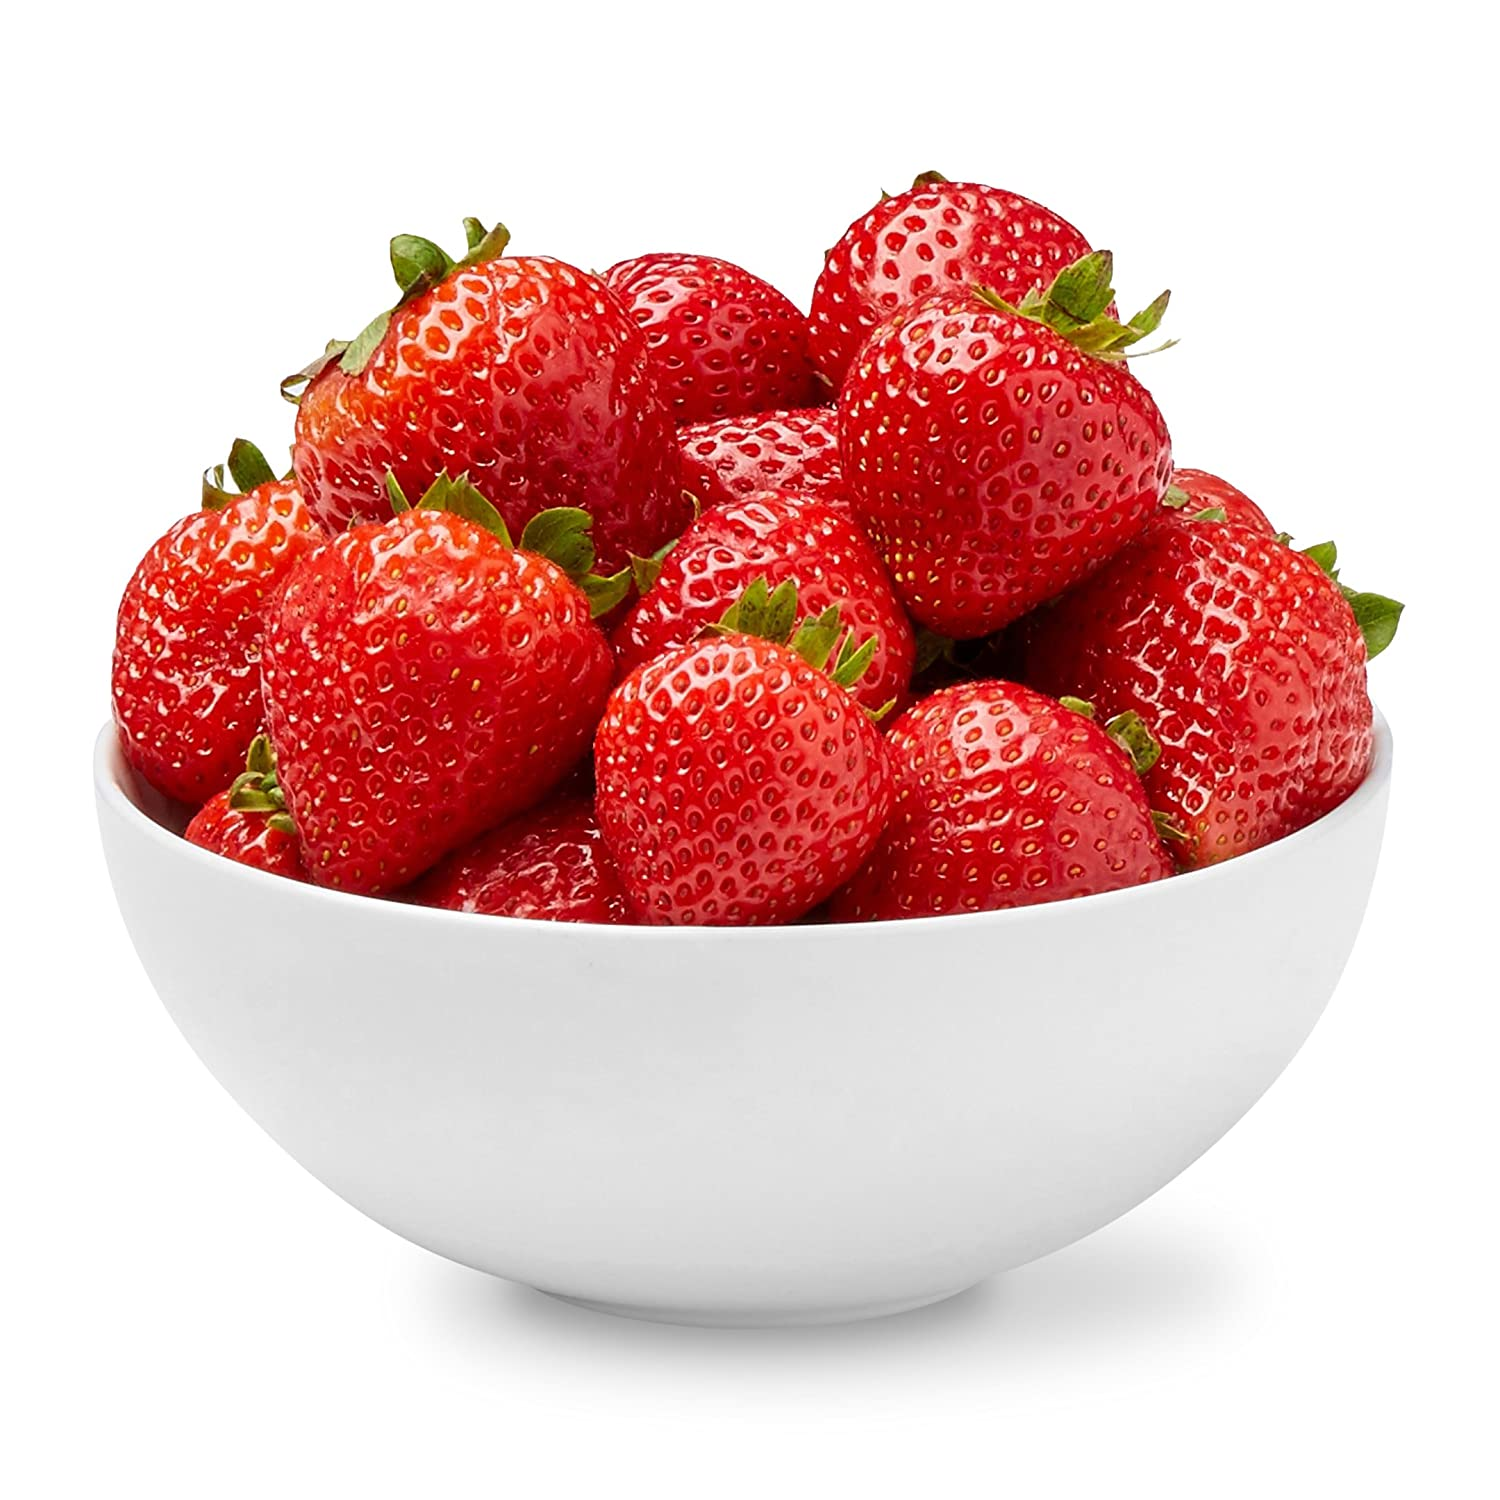 Image result for Strawberries